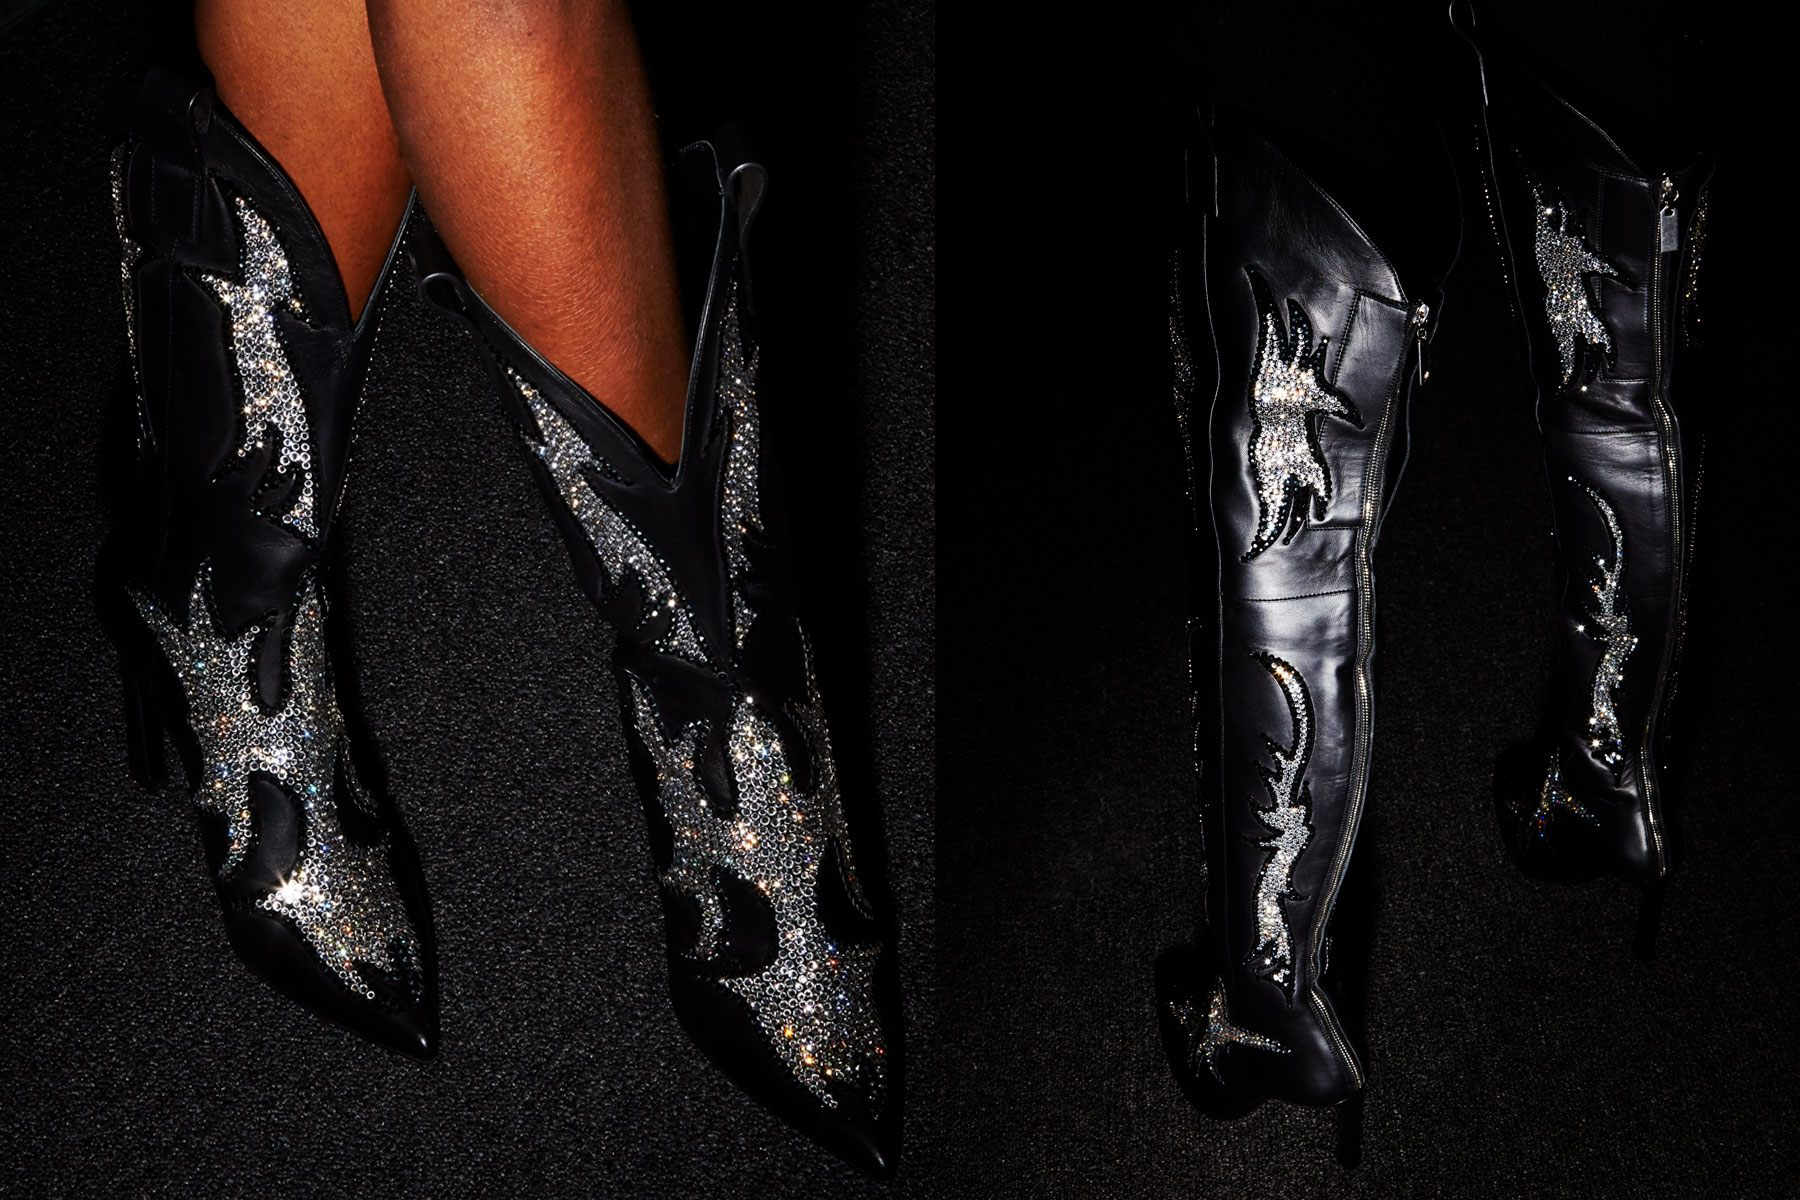 Stuart Weitzman rhinestone cowboy boots at Christian Cowan for Fall 2018. Photographed by Alexander Thompson for Ponyboy magazine.